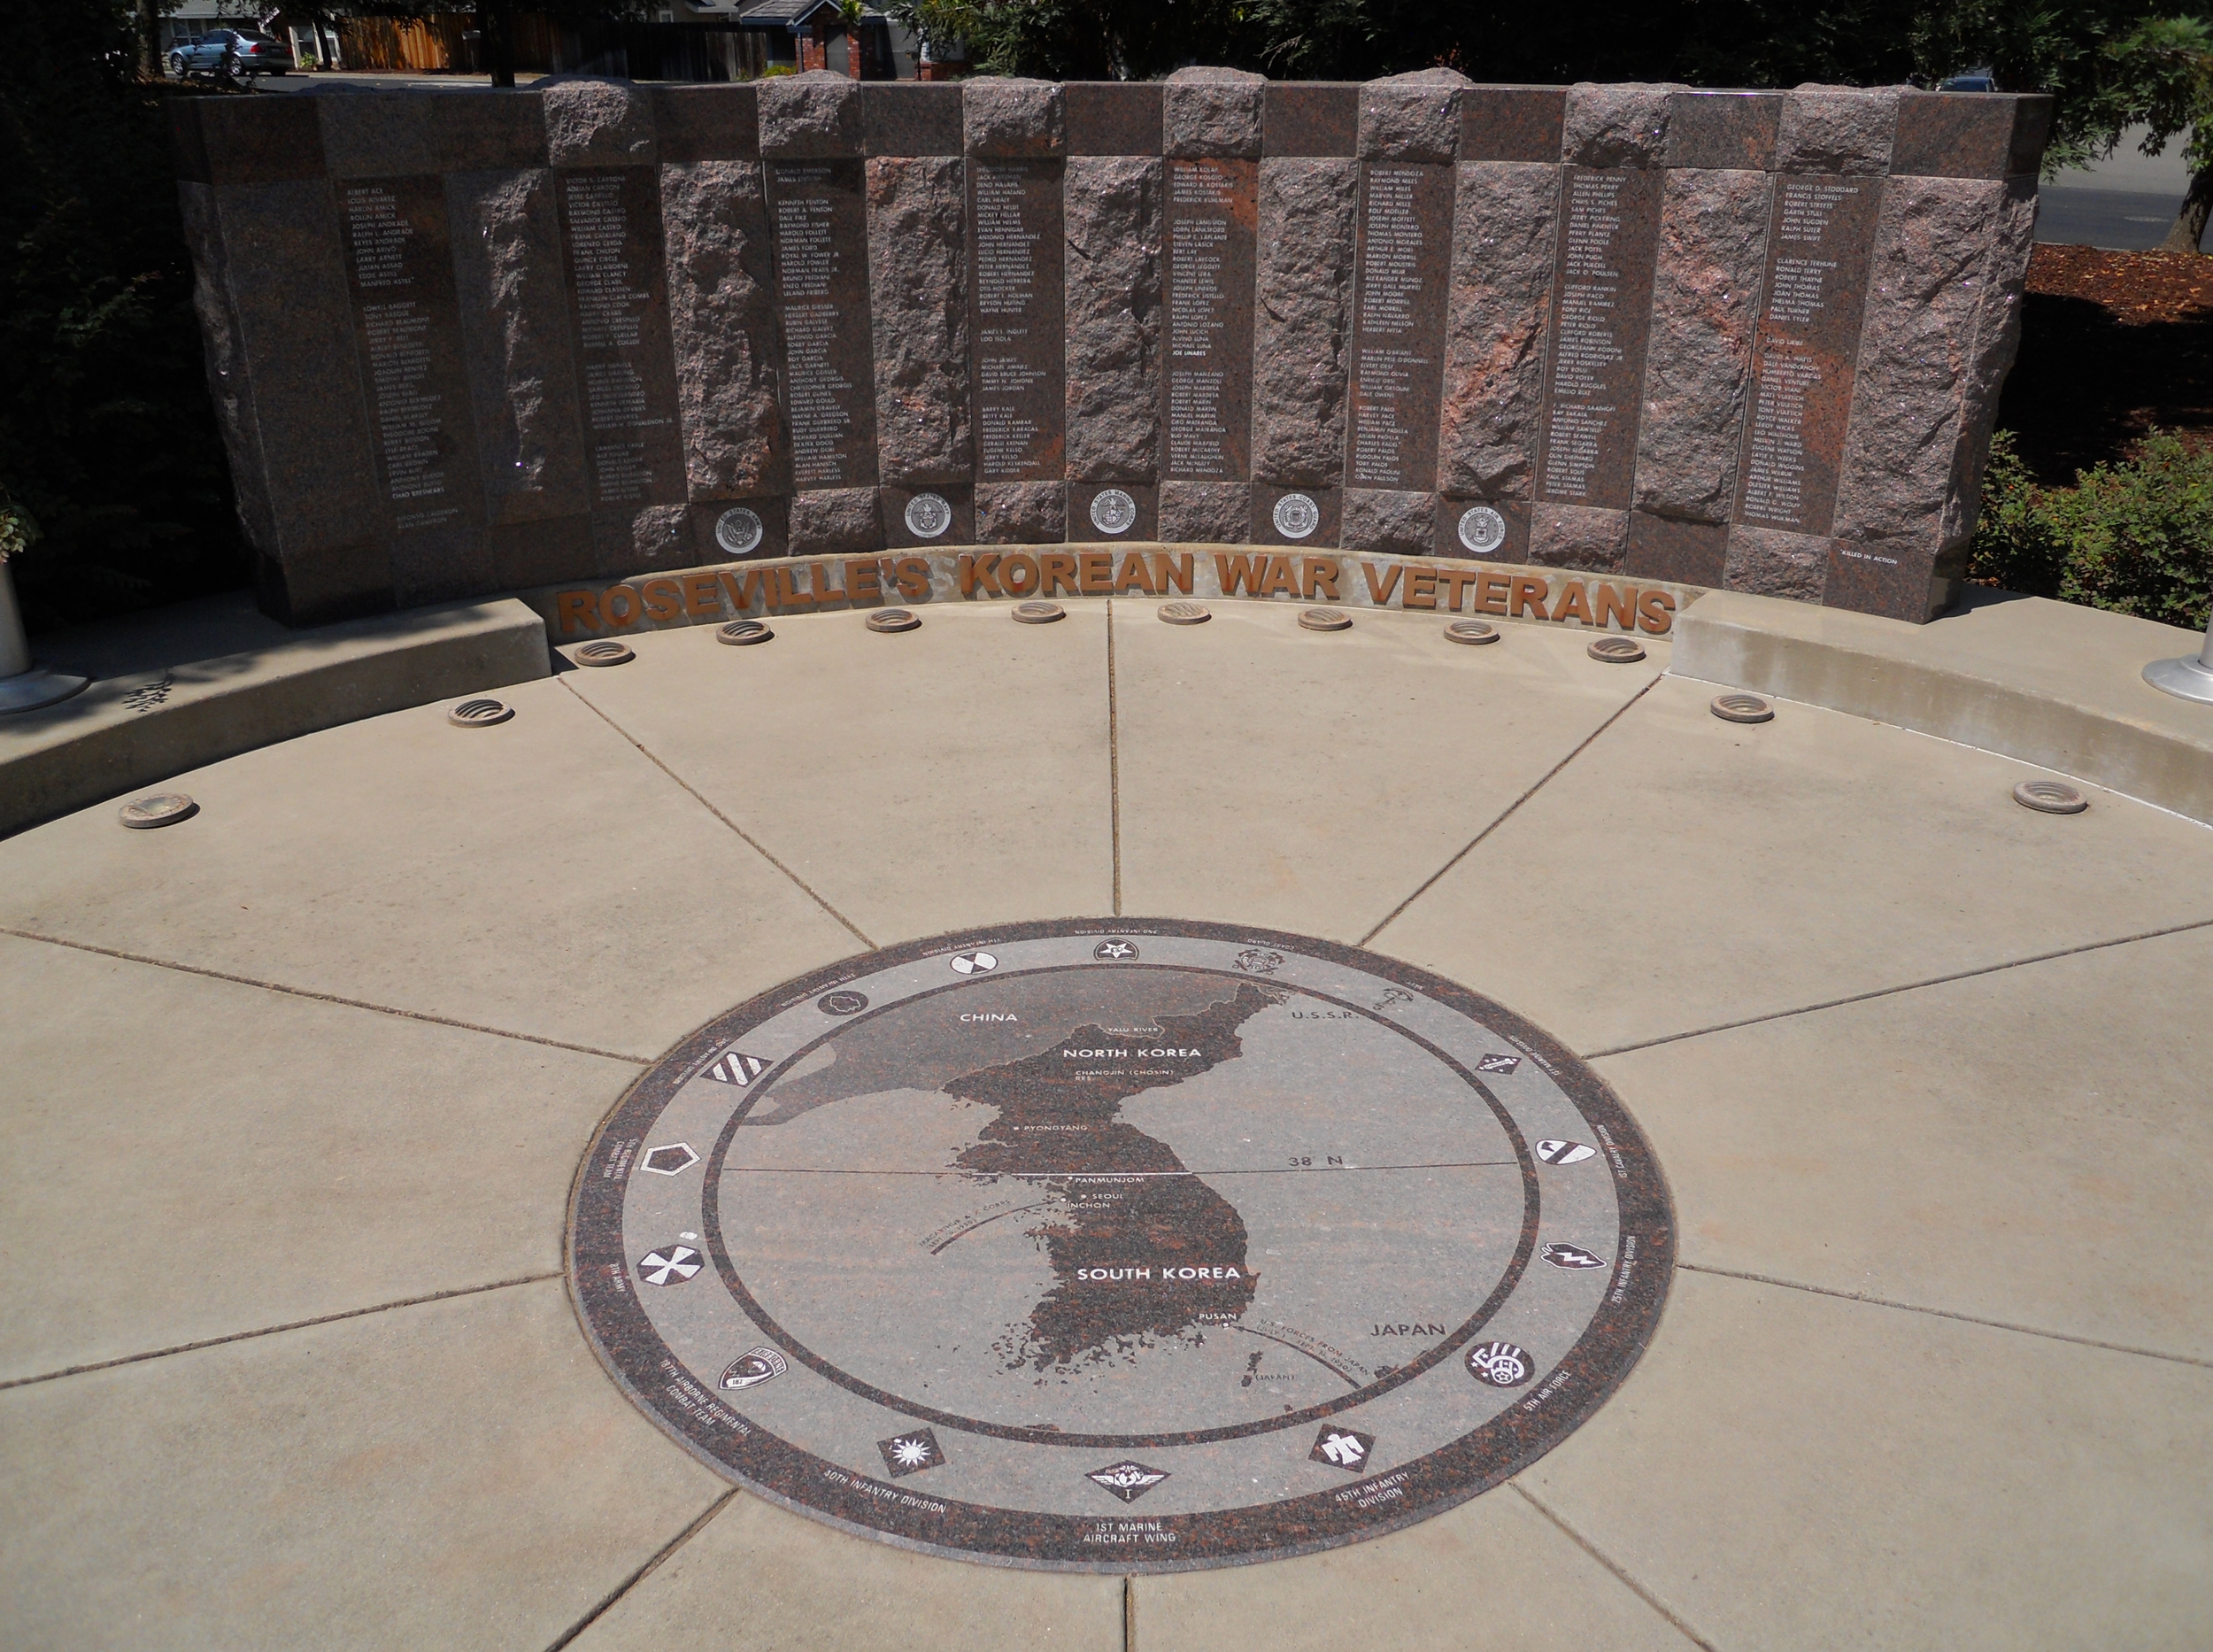 The monument includes a map of Korea.